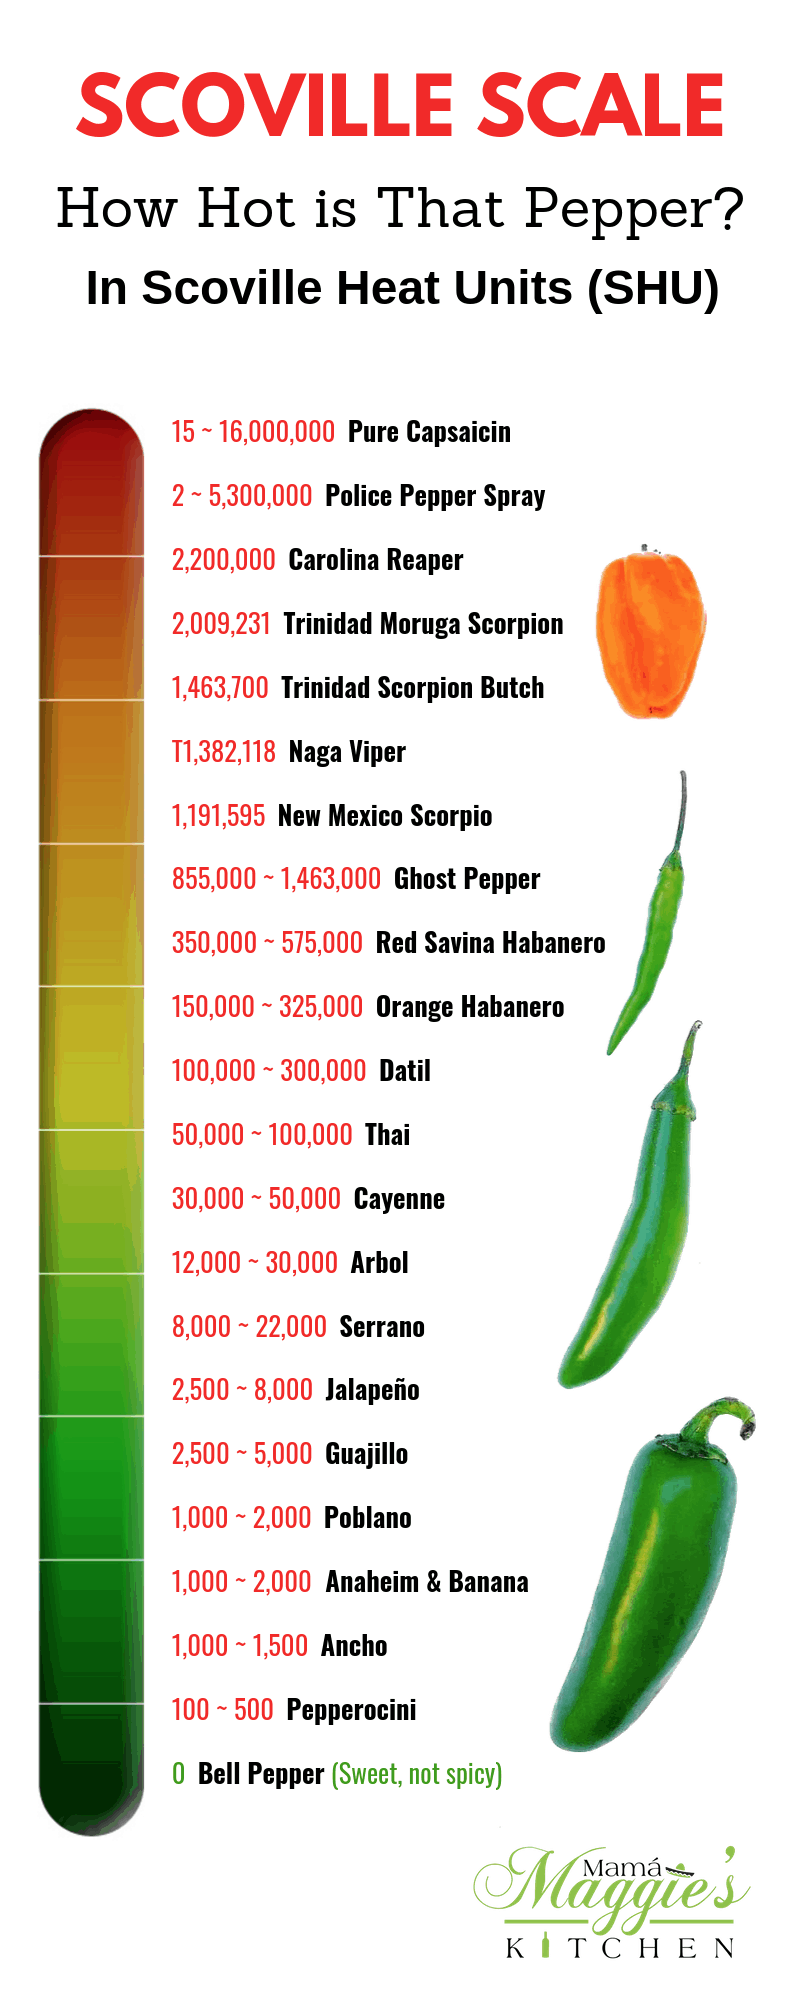 Whenever You Re In Doubt About Which Chile Pepper To Use Check Out The Scoville Scale It Ll Help You Ans Stuffed Peppers Stuffed Hot Peppers Types Of Peppers